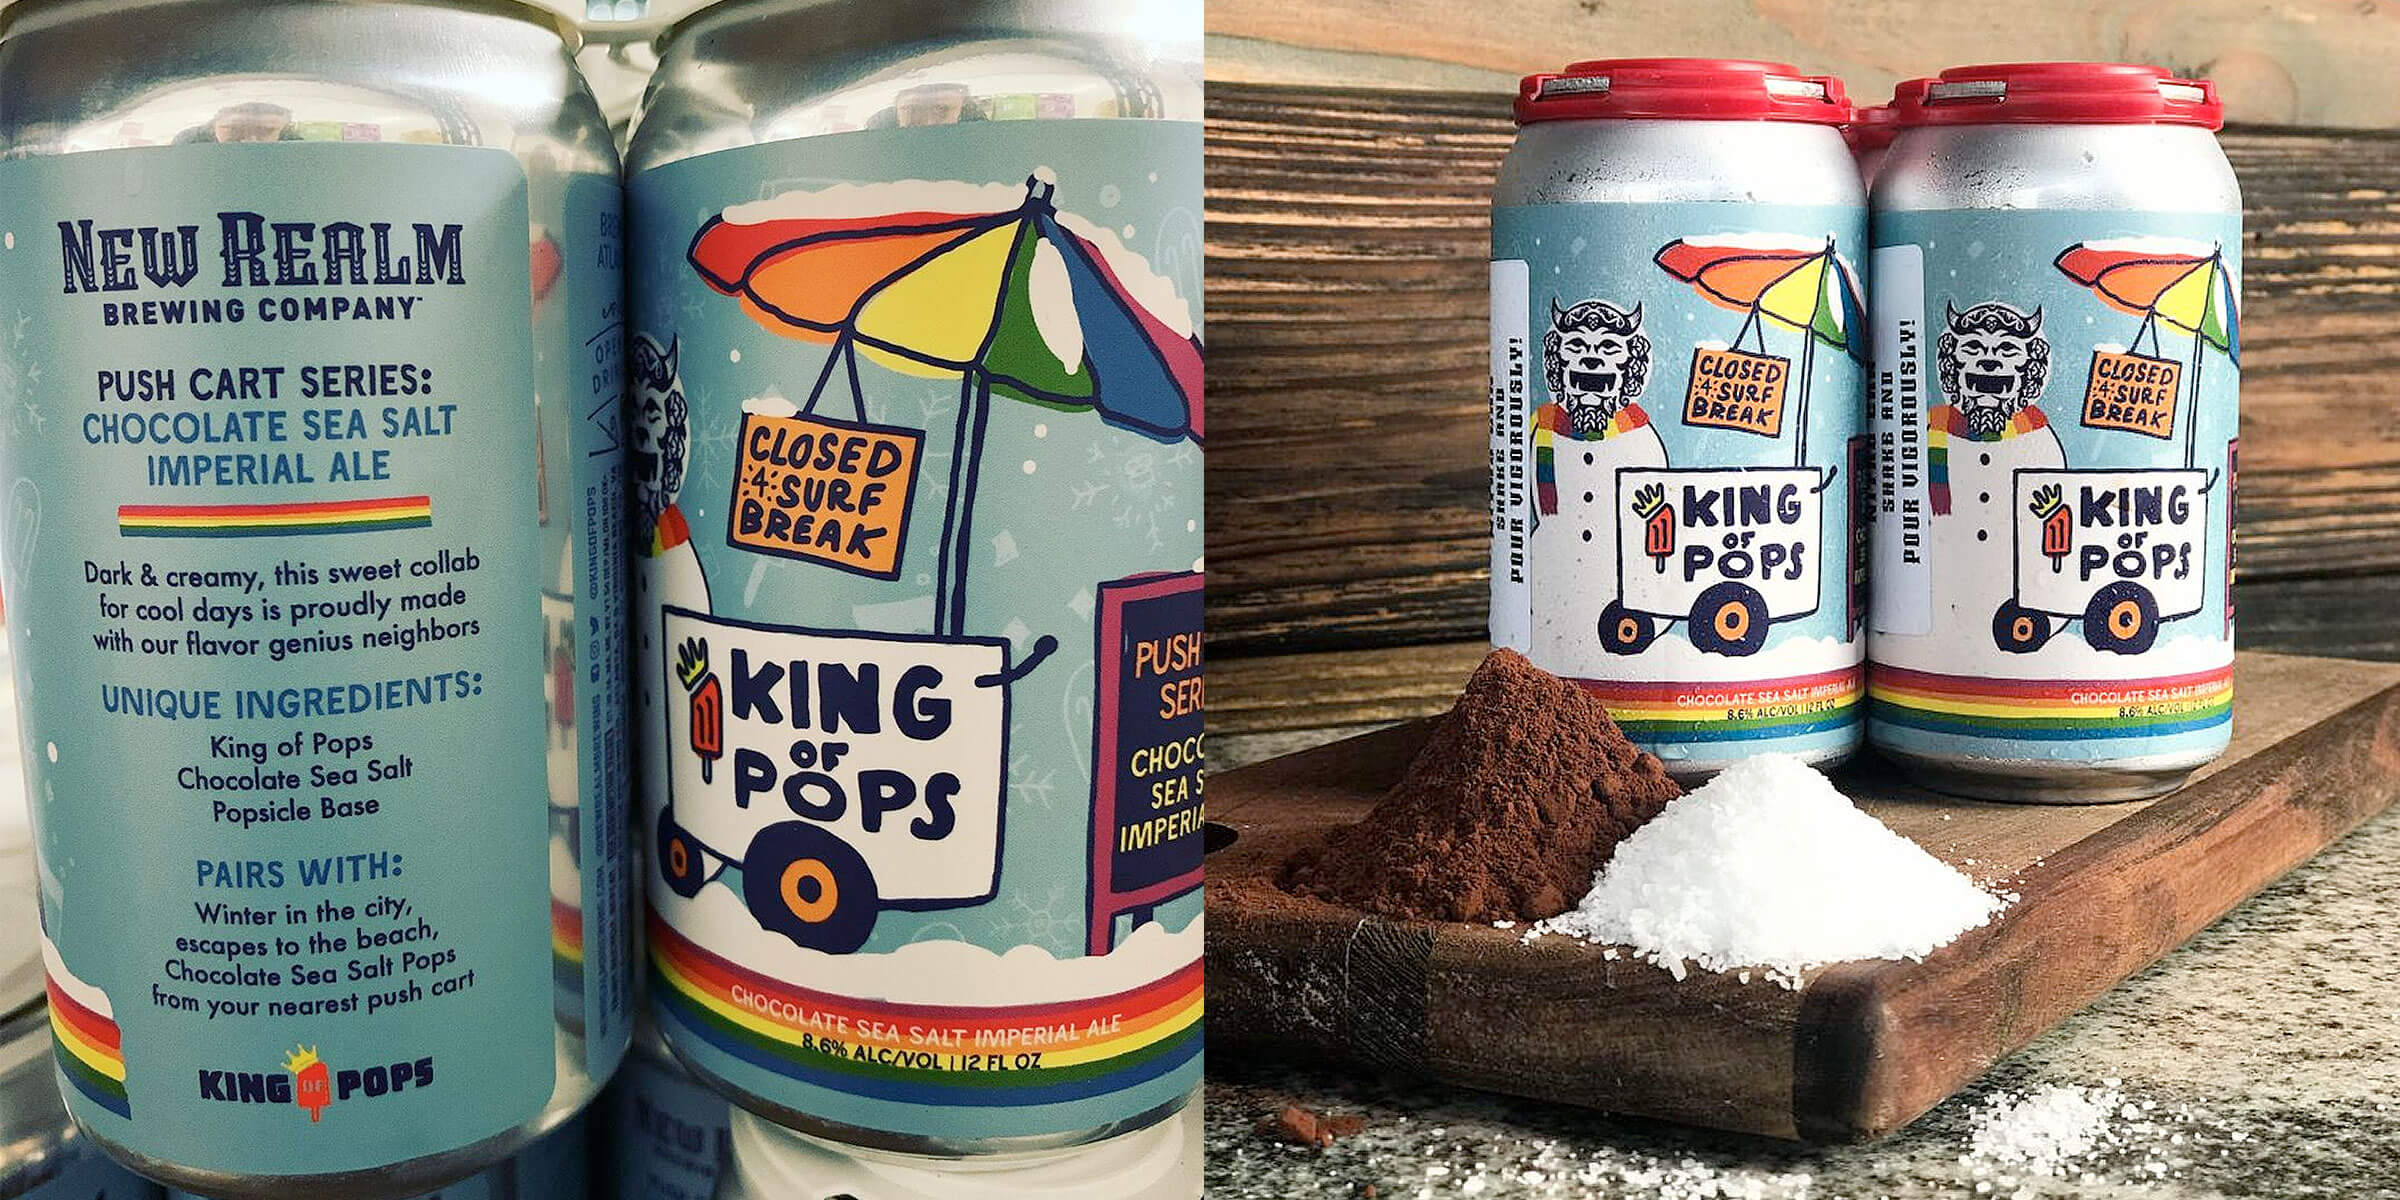 King of Pops and New Realm Brewing Company aim to warm things up with the second release in the Push Cart Series, Chocolate Sea Salt Imperial Ale.